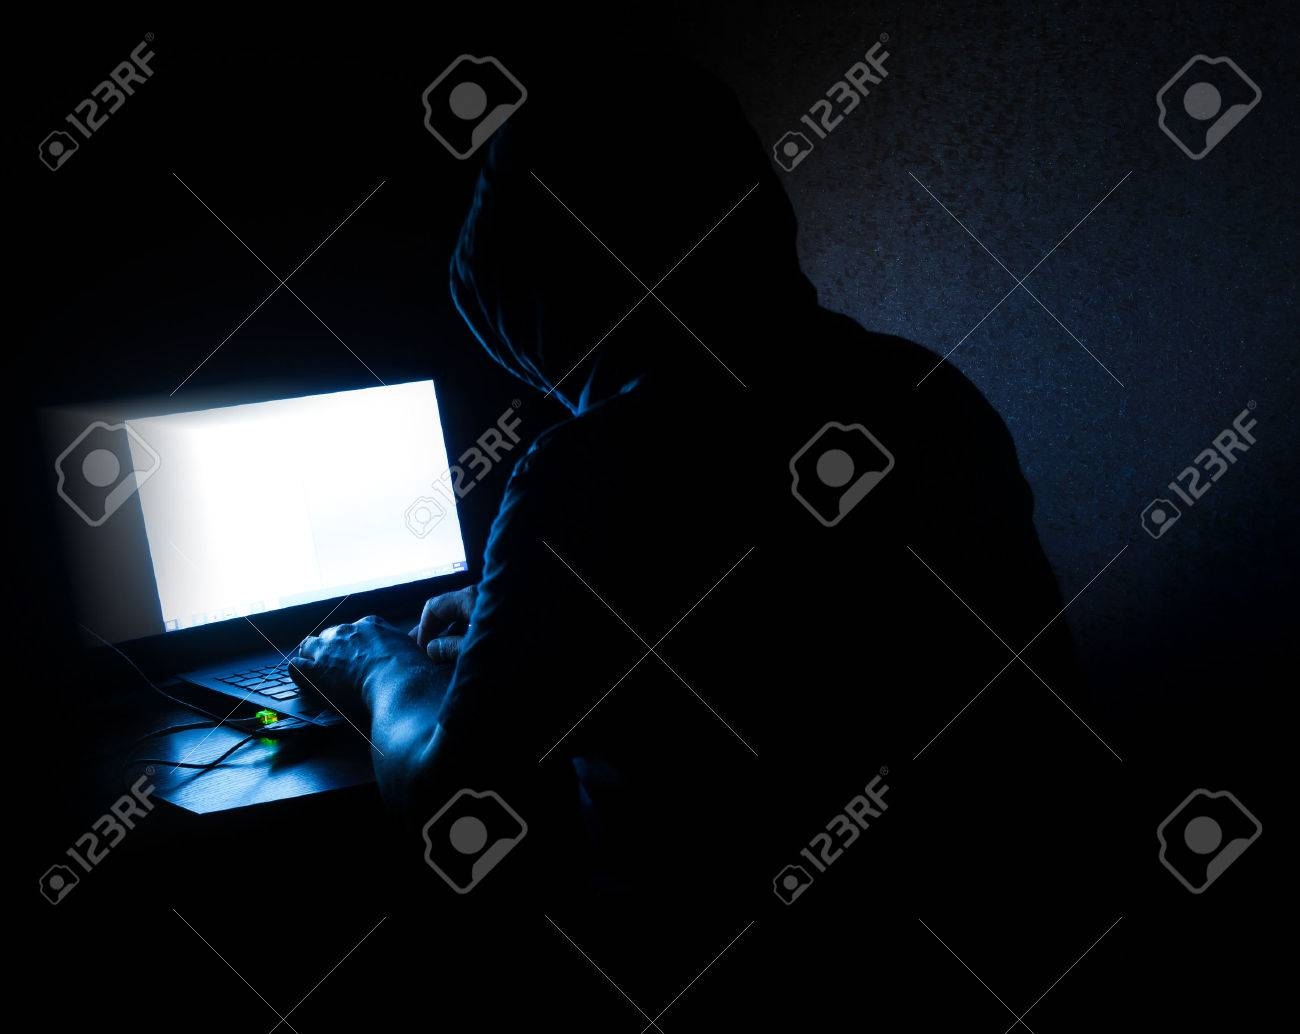 Mysterious computer hacker stealing data from a laptop - 40298724